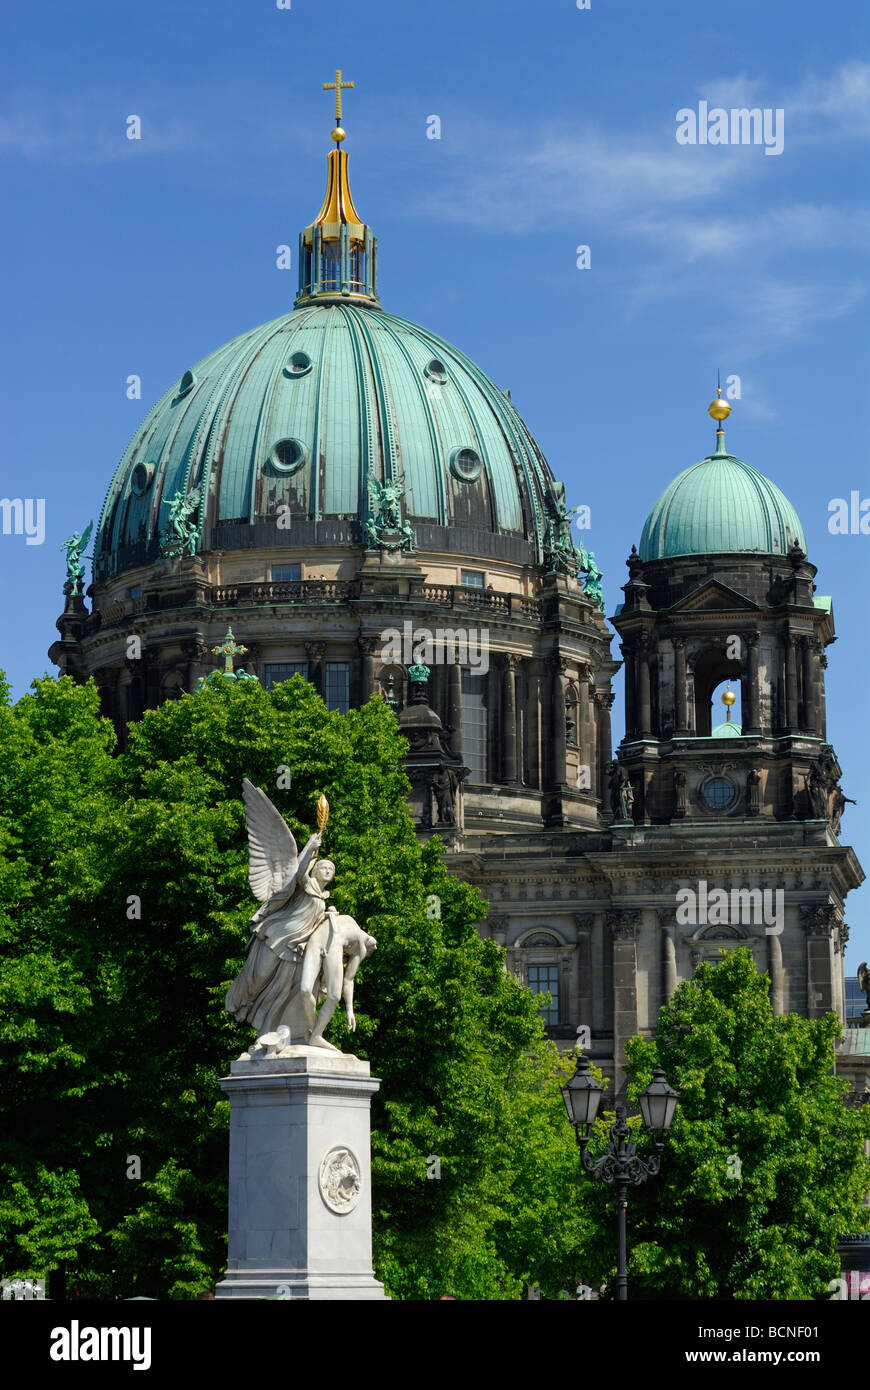 Berlin Germany Berliner Dom cathedral - Stock Image